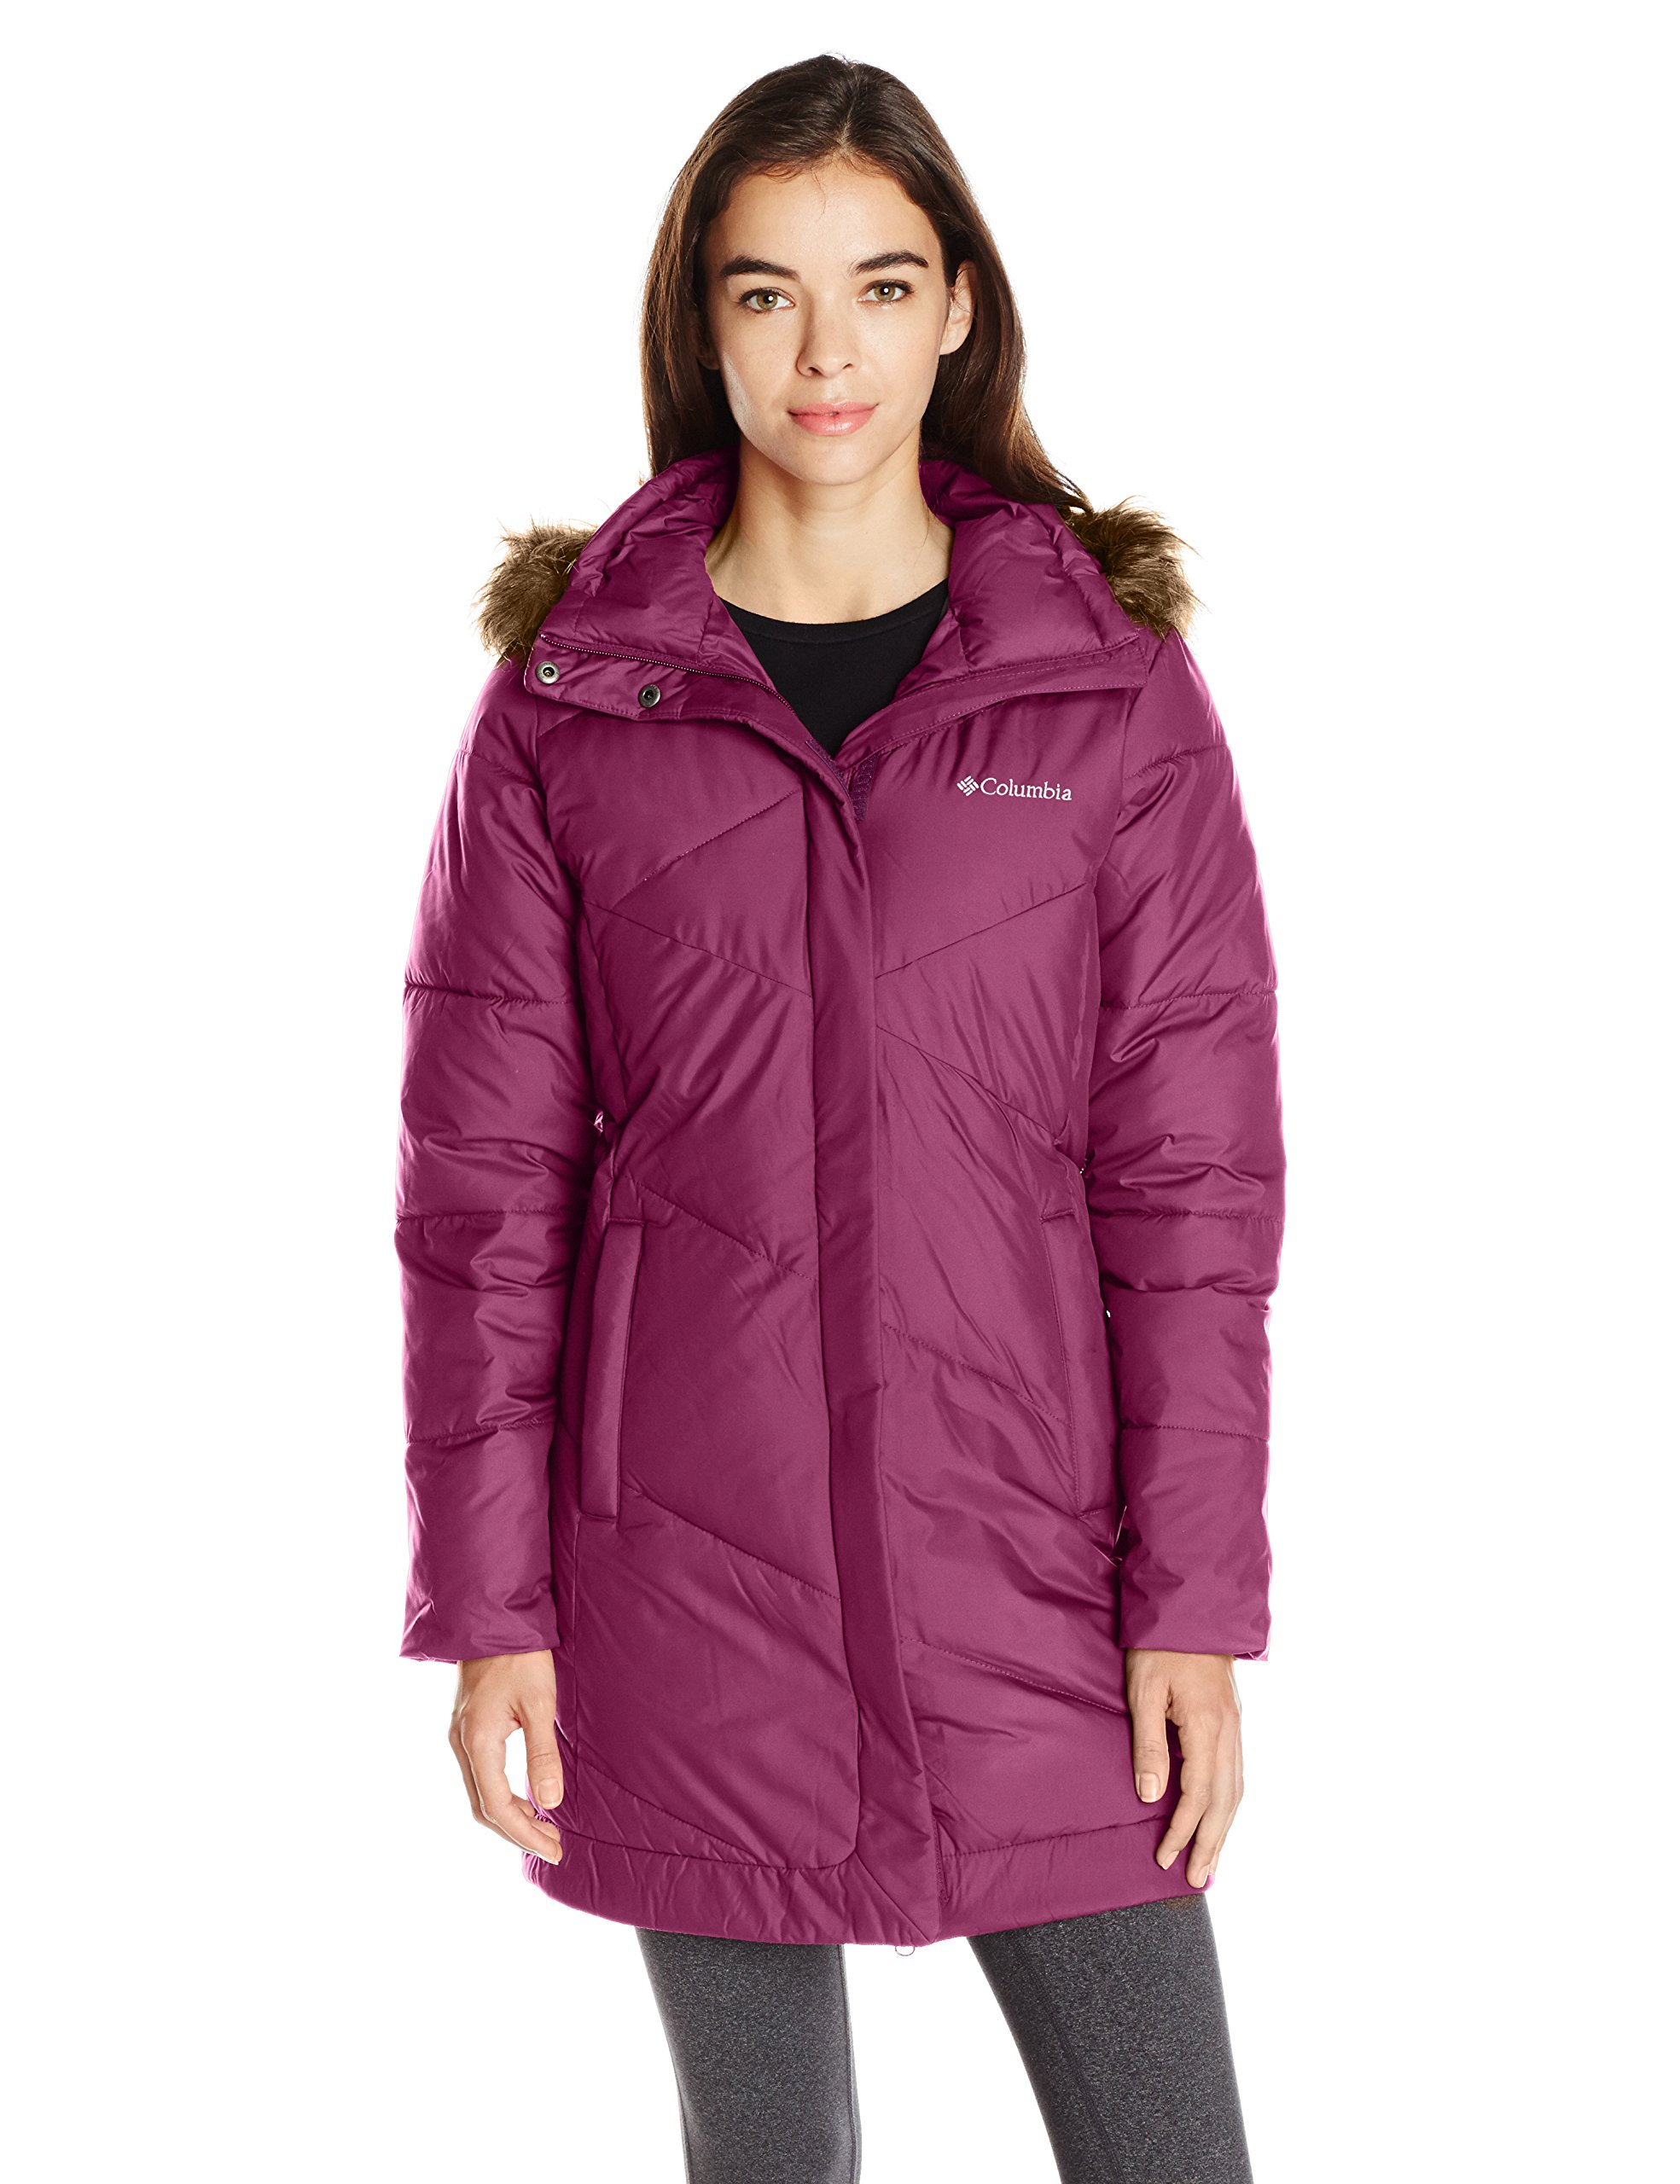 Columbia Women's Snow Eclipse Mid Jacket, Dark Raspberry, XL